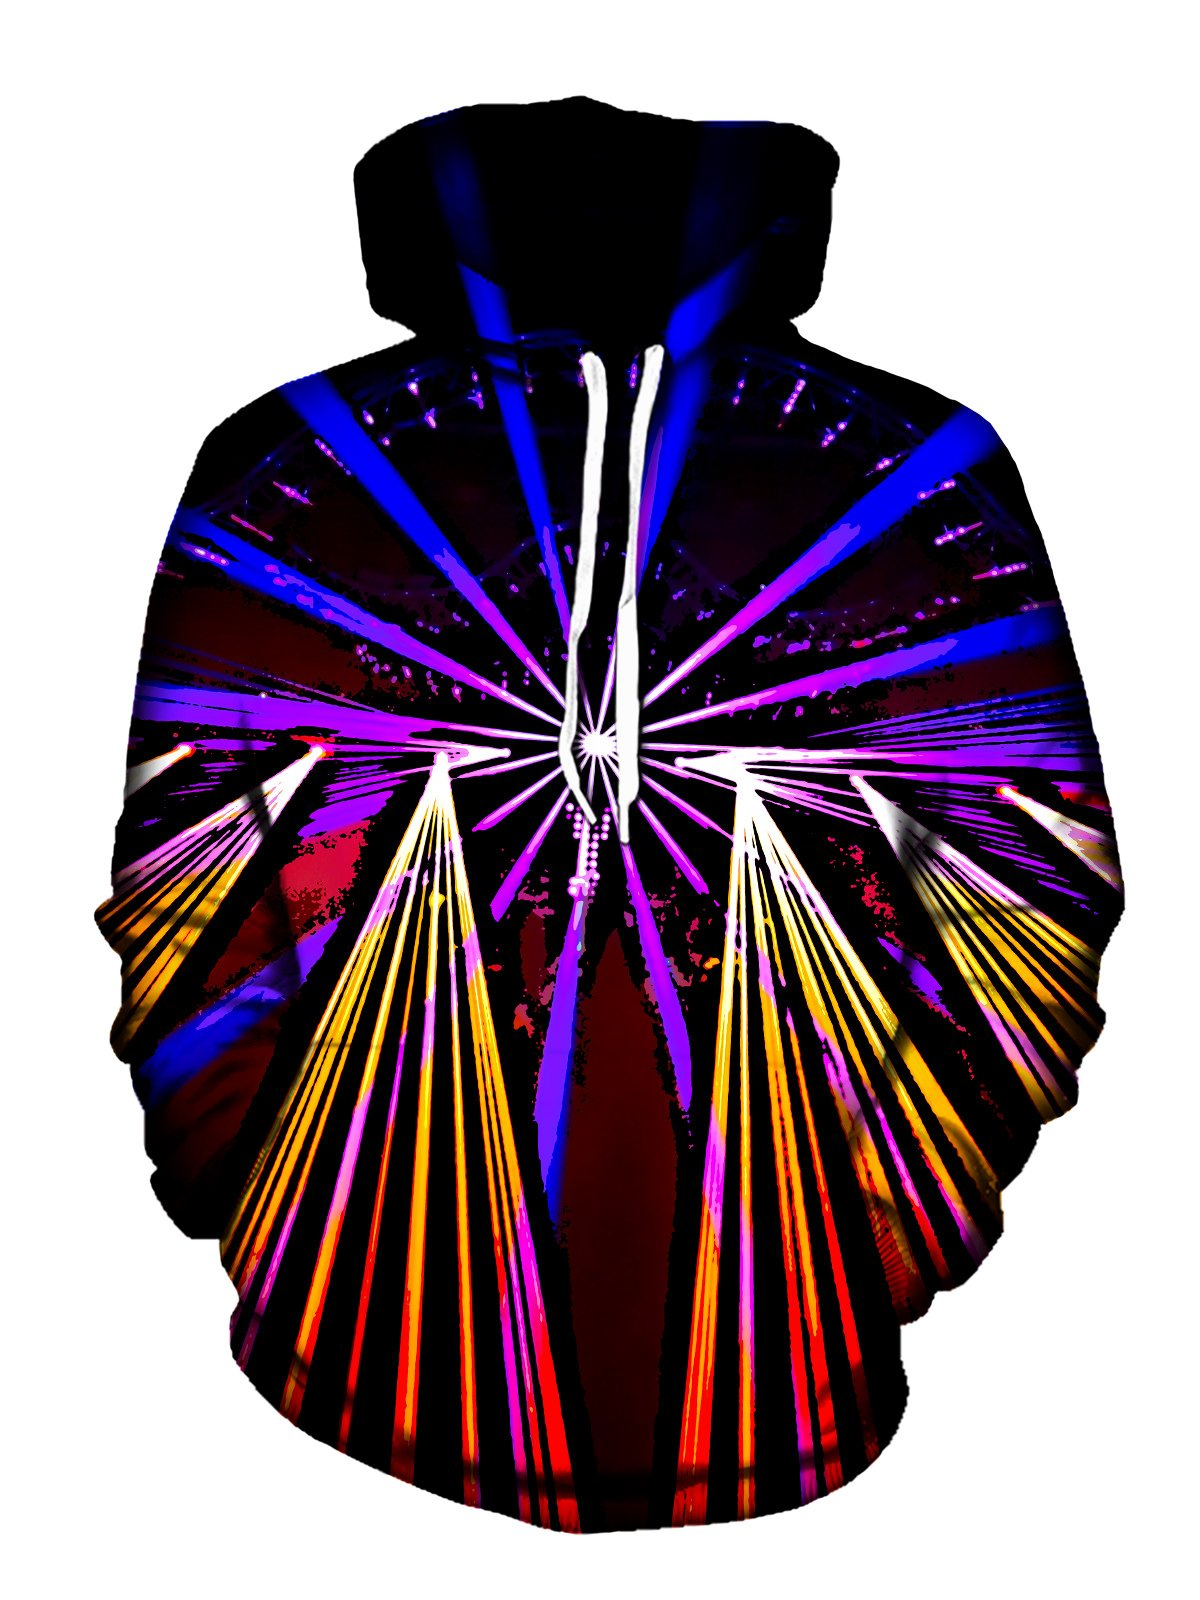 Neon Lights On Black Pullover Hoodie Front View With White Strings